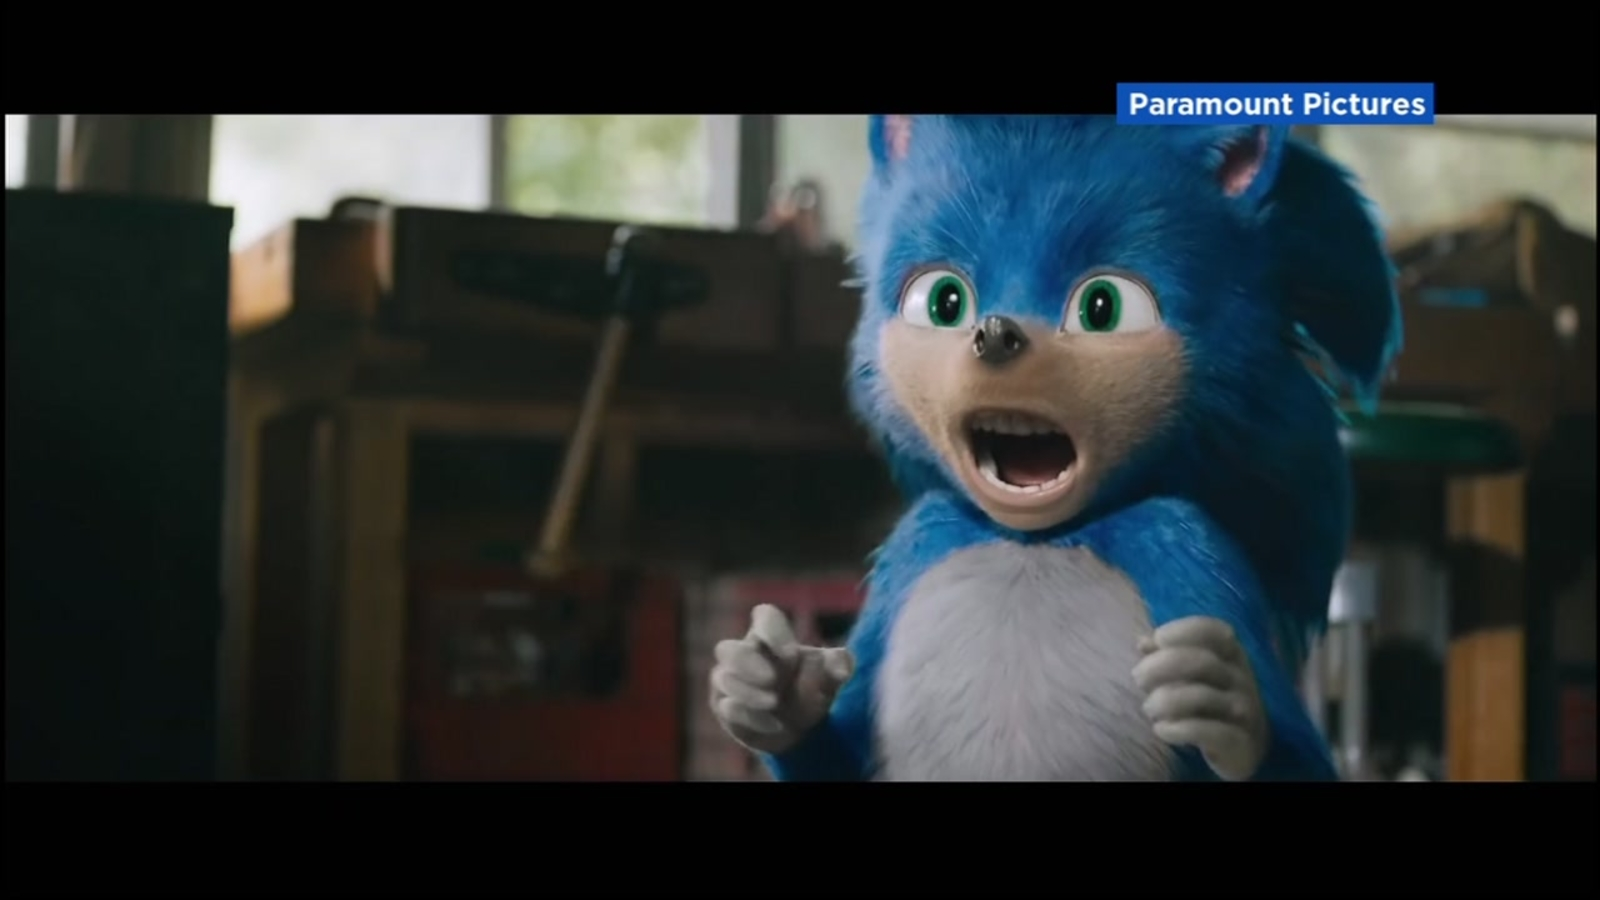 Sonic The Hedgehog Trailer Gives Fans The Creeps Abc7 New York